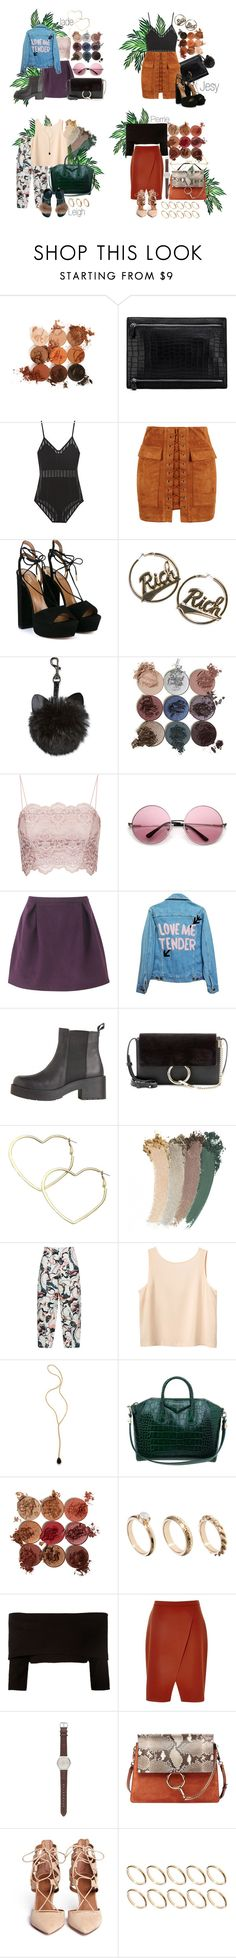 """""""Touch LM"""" by voidjesy ❤ liked on Polyvore featuring Balmain, WithChic, Aquazzura, Joyrich, Topshop, Gyunel, High Heels Suicide, Chloé, Thalia Sodi and Gucci"""